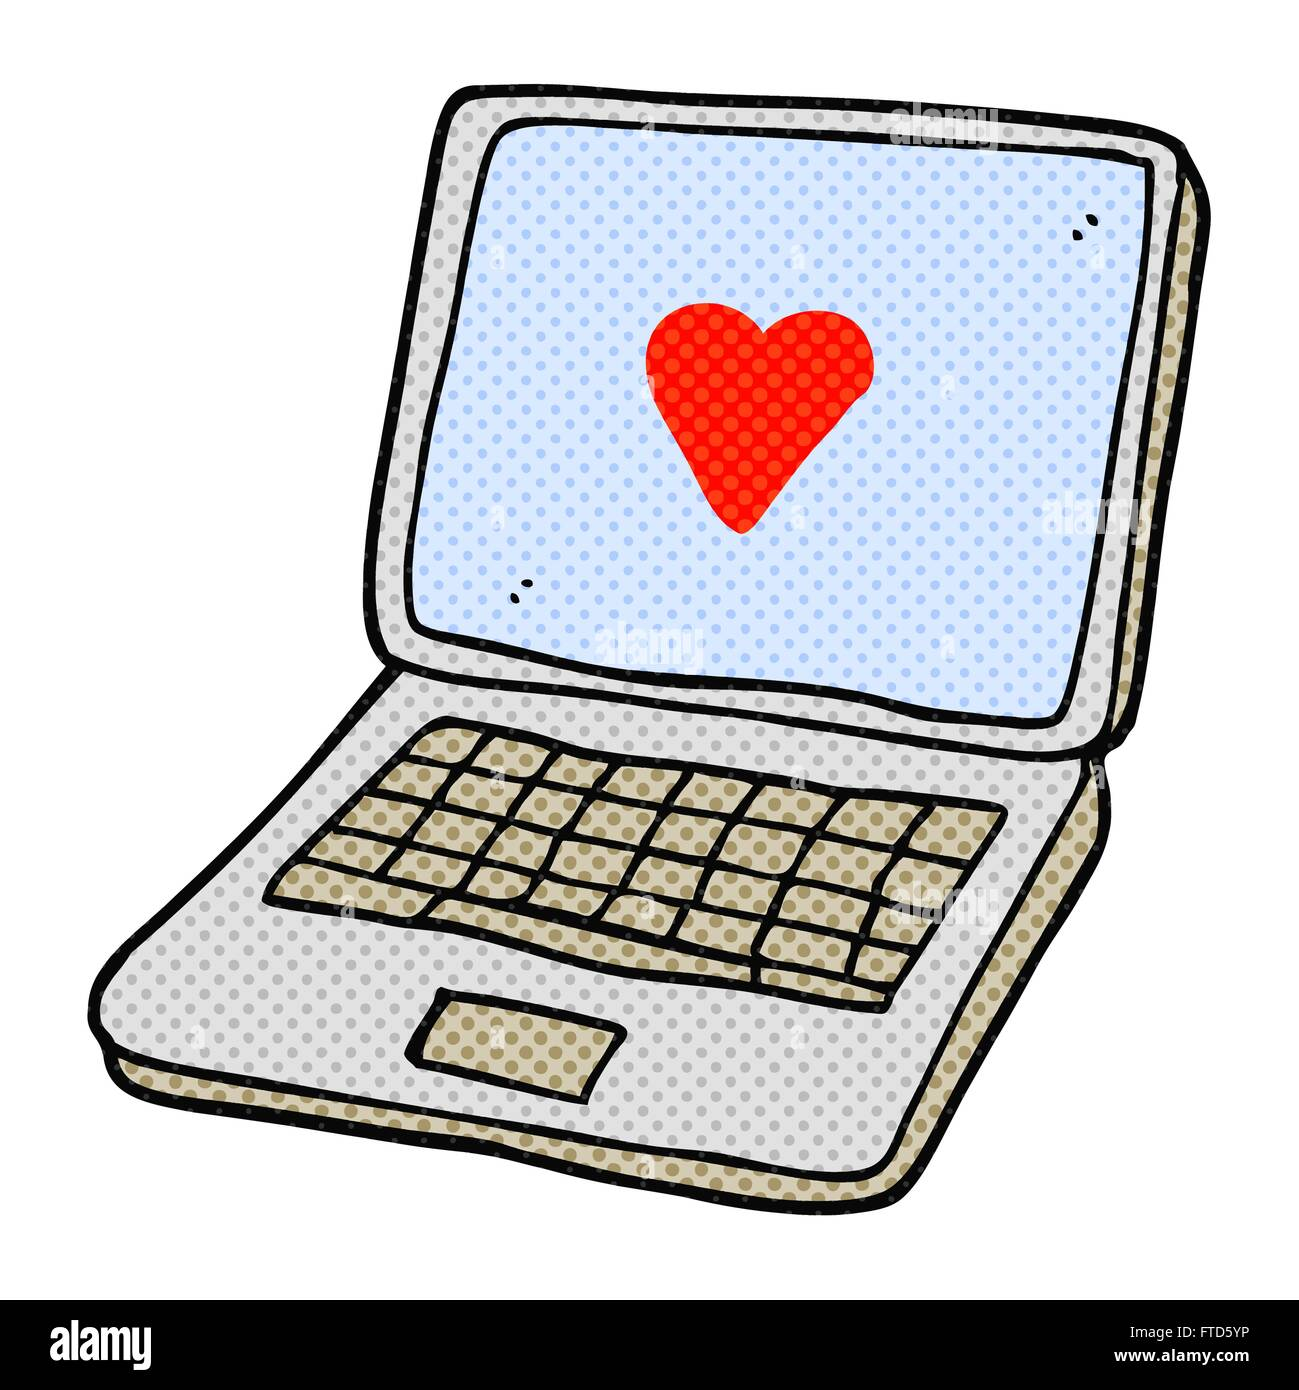 Freehand drawn cartoon laptop computer with heart symbol on screen freehand drawn cartoon laptop computer with heart symbol on screen buycottarizona Choice Image